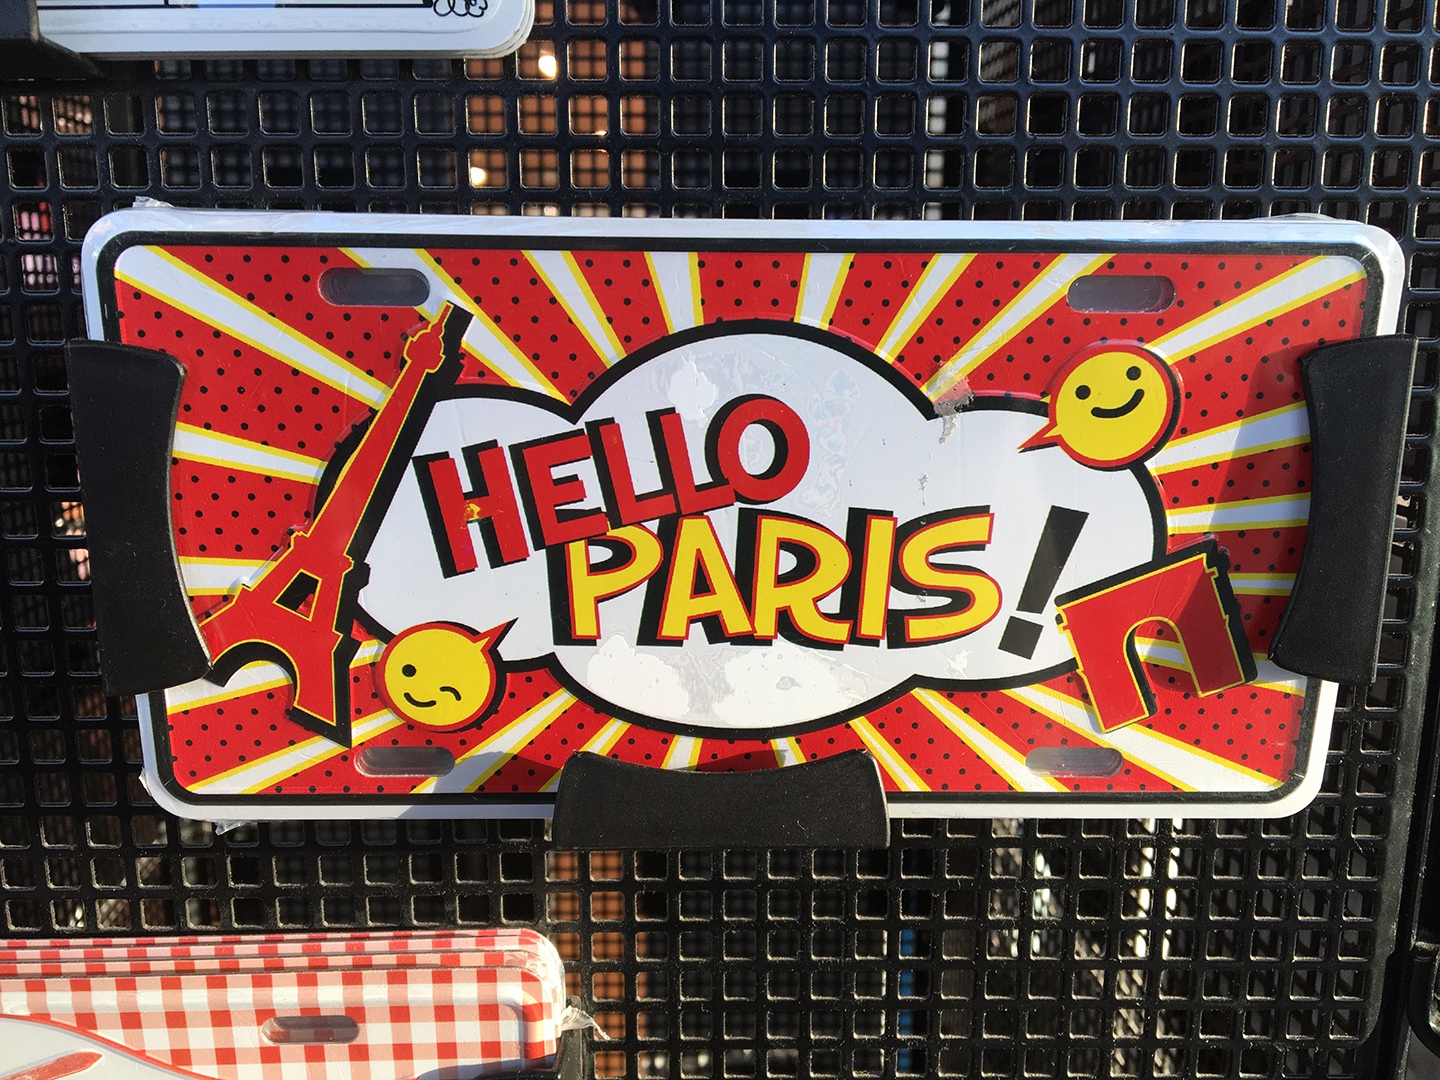 HELLO PARIS souvenir license plate with a garish red-and-yellow sunburst, silhouettes of the Eiffel Tower and the Ard de Triomphe, and two smiling cartoon speech balloons for no good reason at all